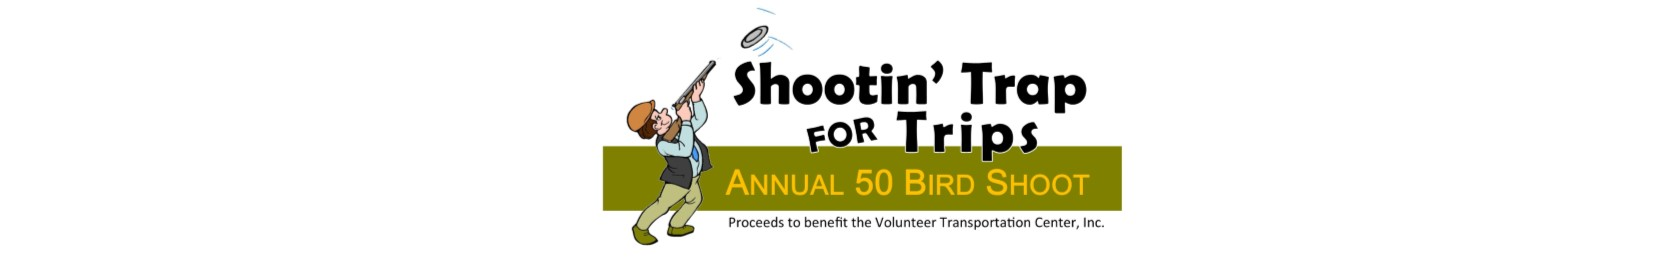 7th Annual Shootin' Trap for Trips